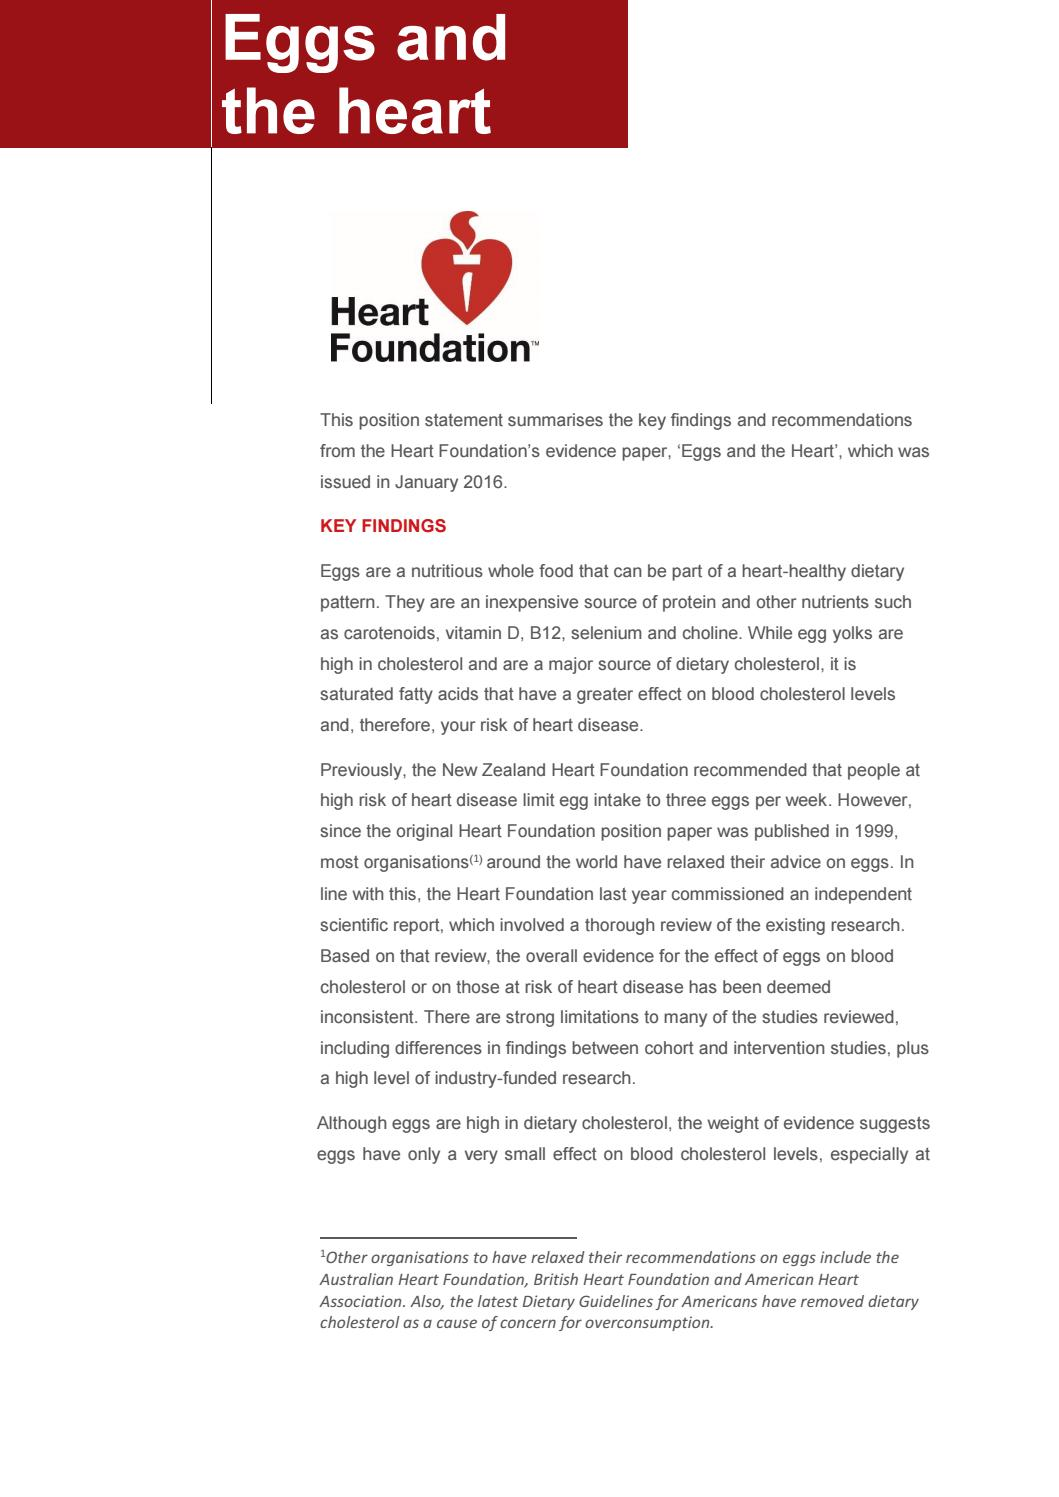 american heart association guidelines for cholesterol levels